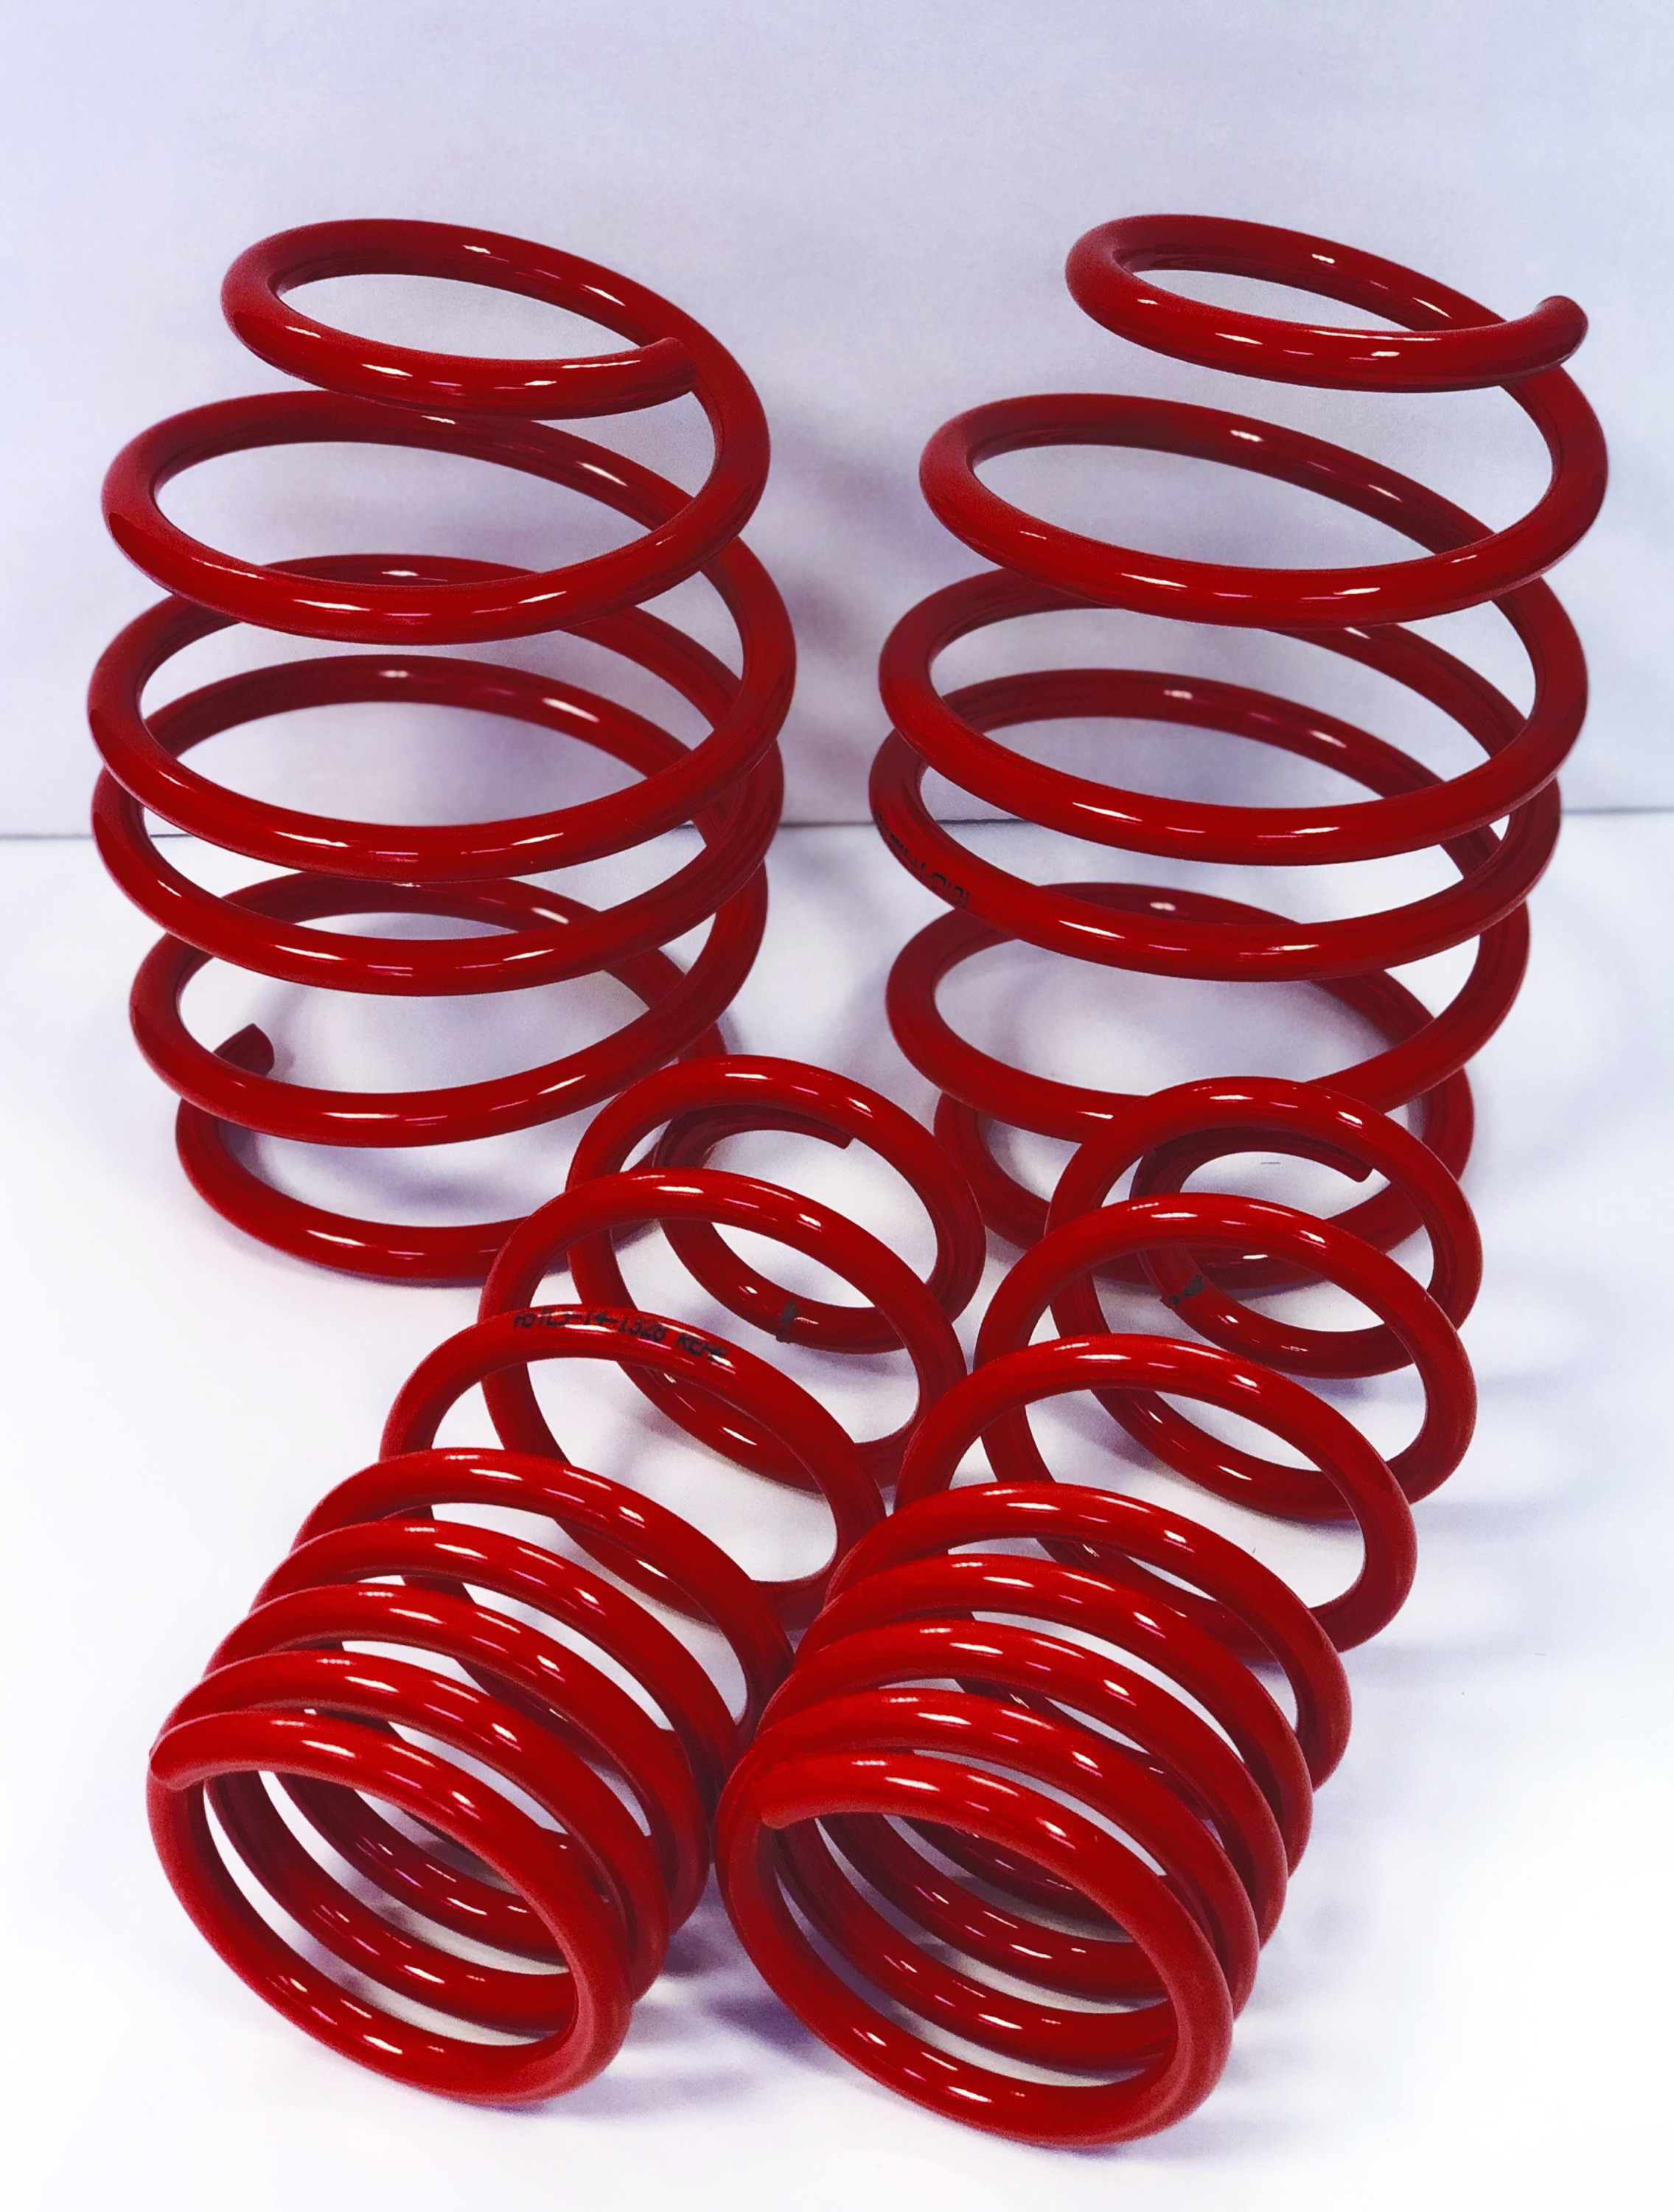 Vauxhall ASTRA AST Suspension Lowering Springs 35MM